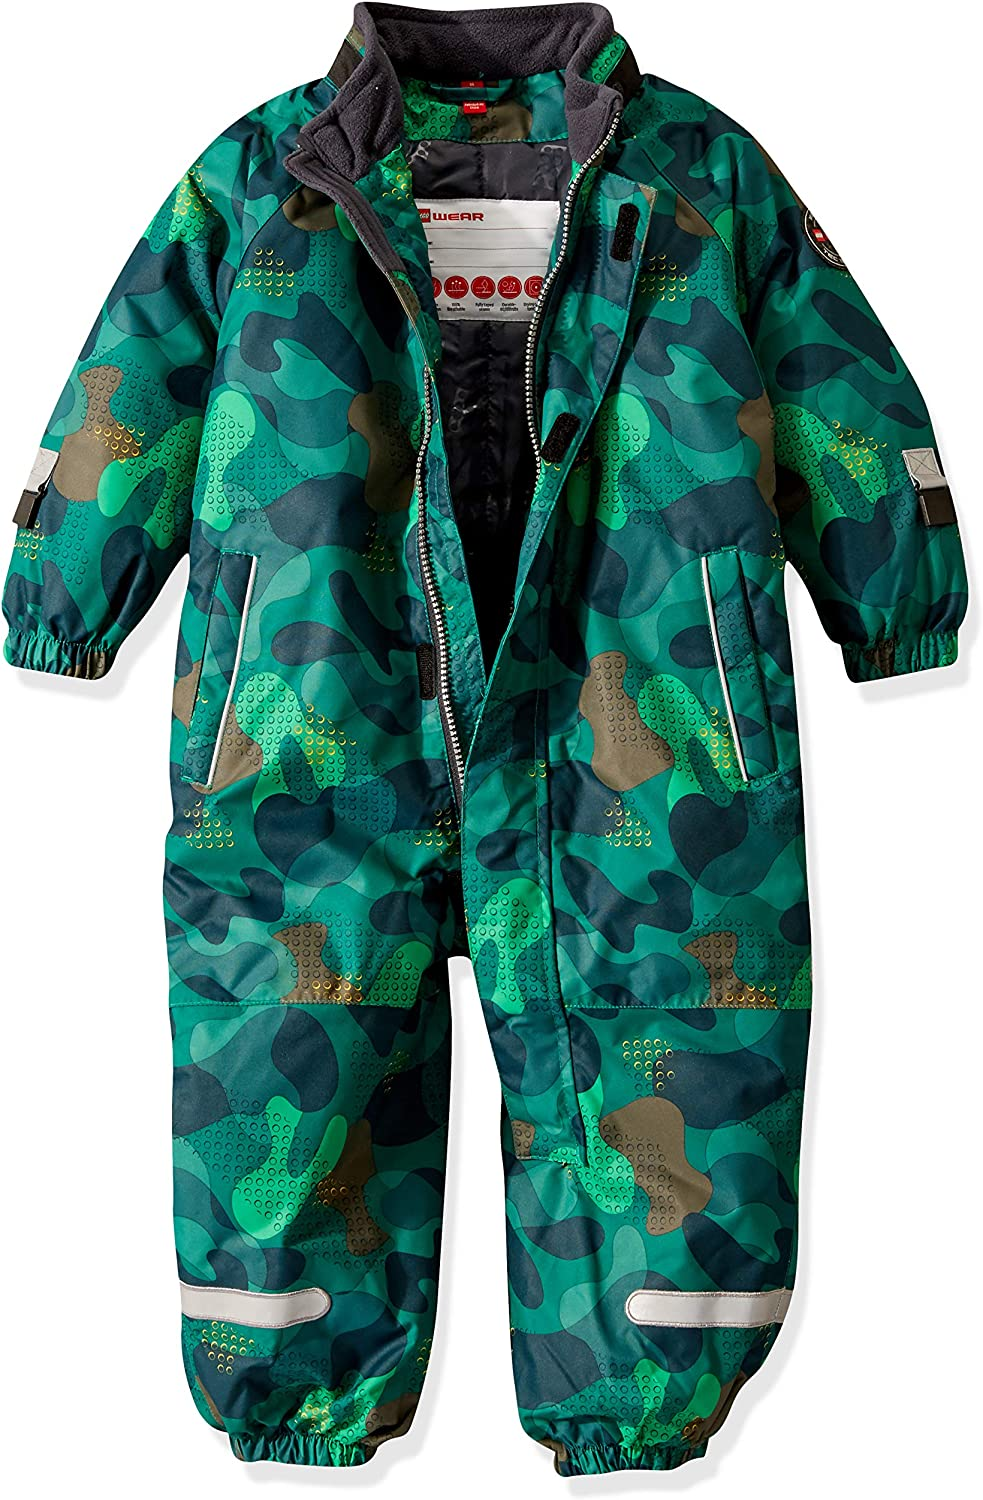 Lego Wear Baby Snowsuit